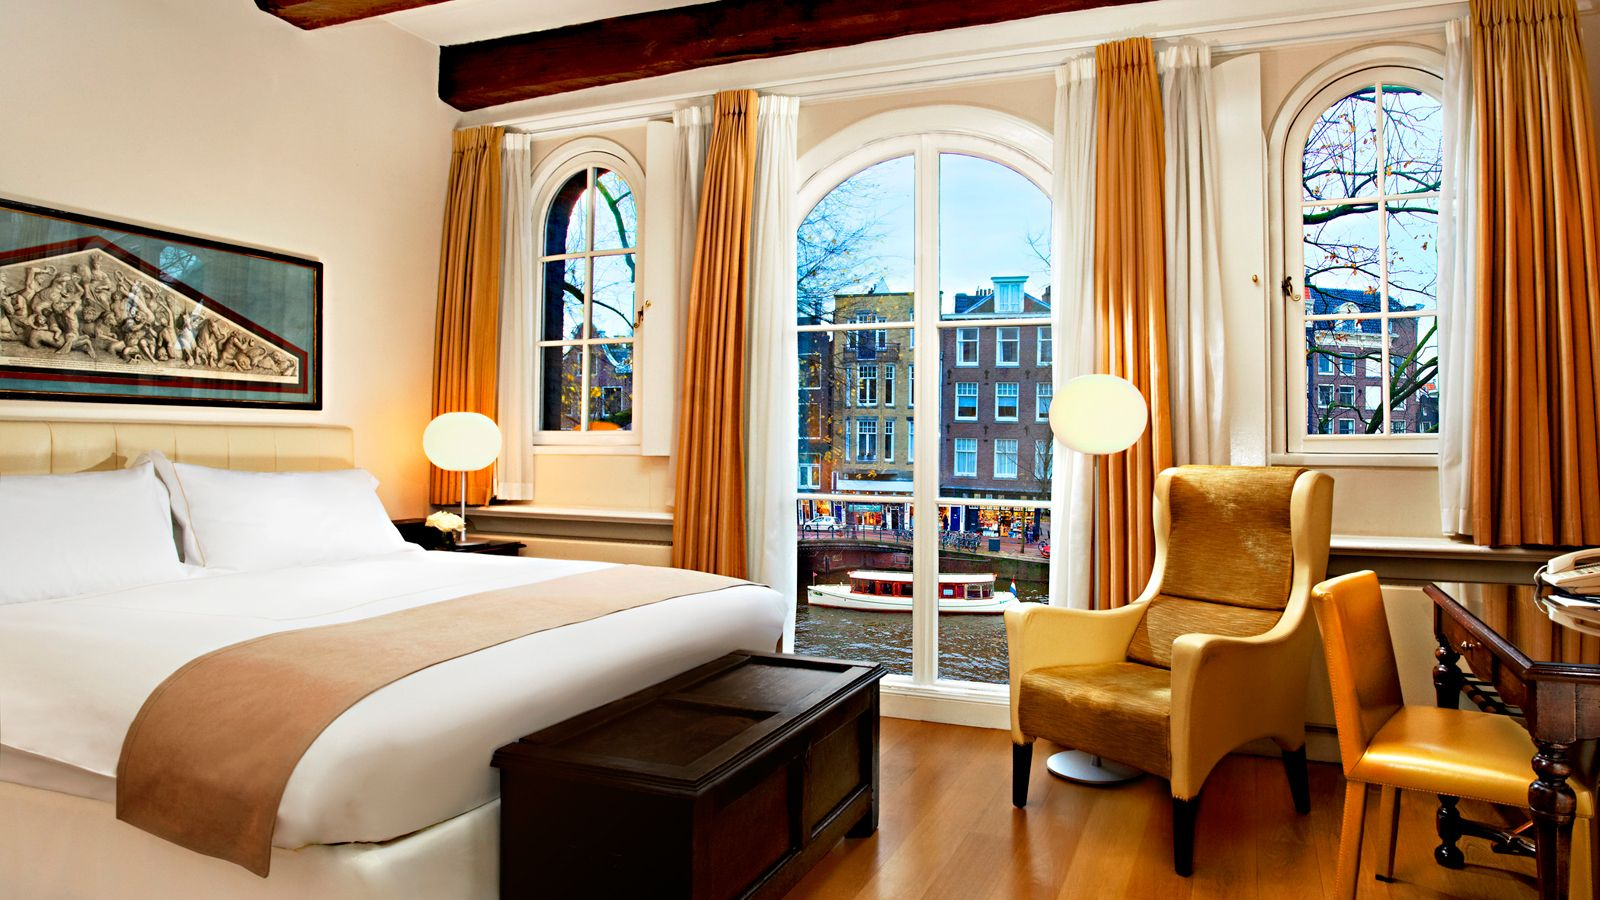 Nh Barbizon Palace Hotel Is A 5 Star The Facility 0 6 Km From